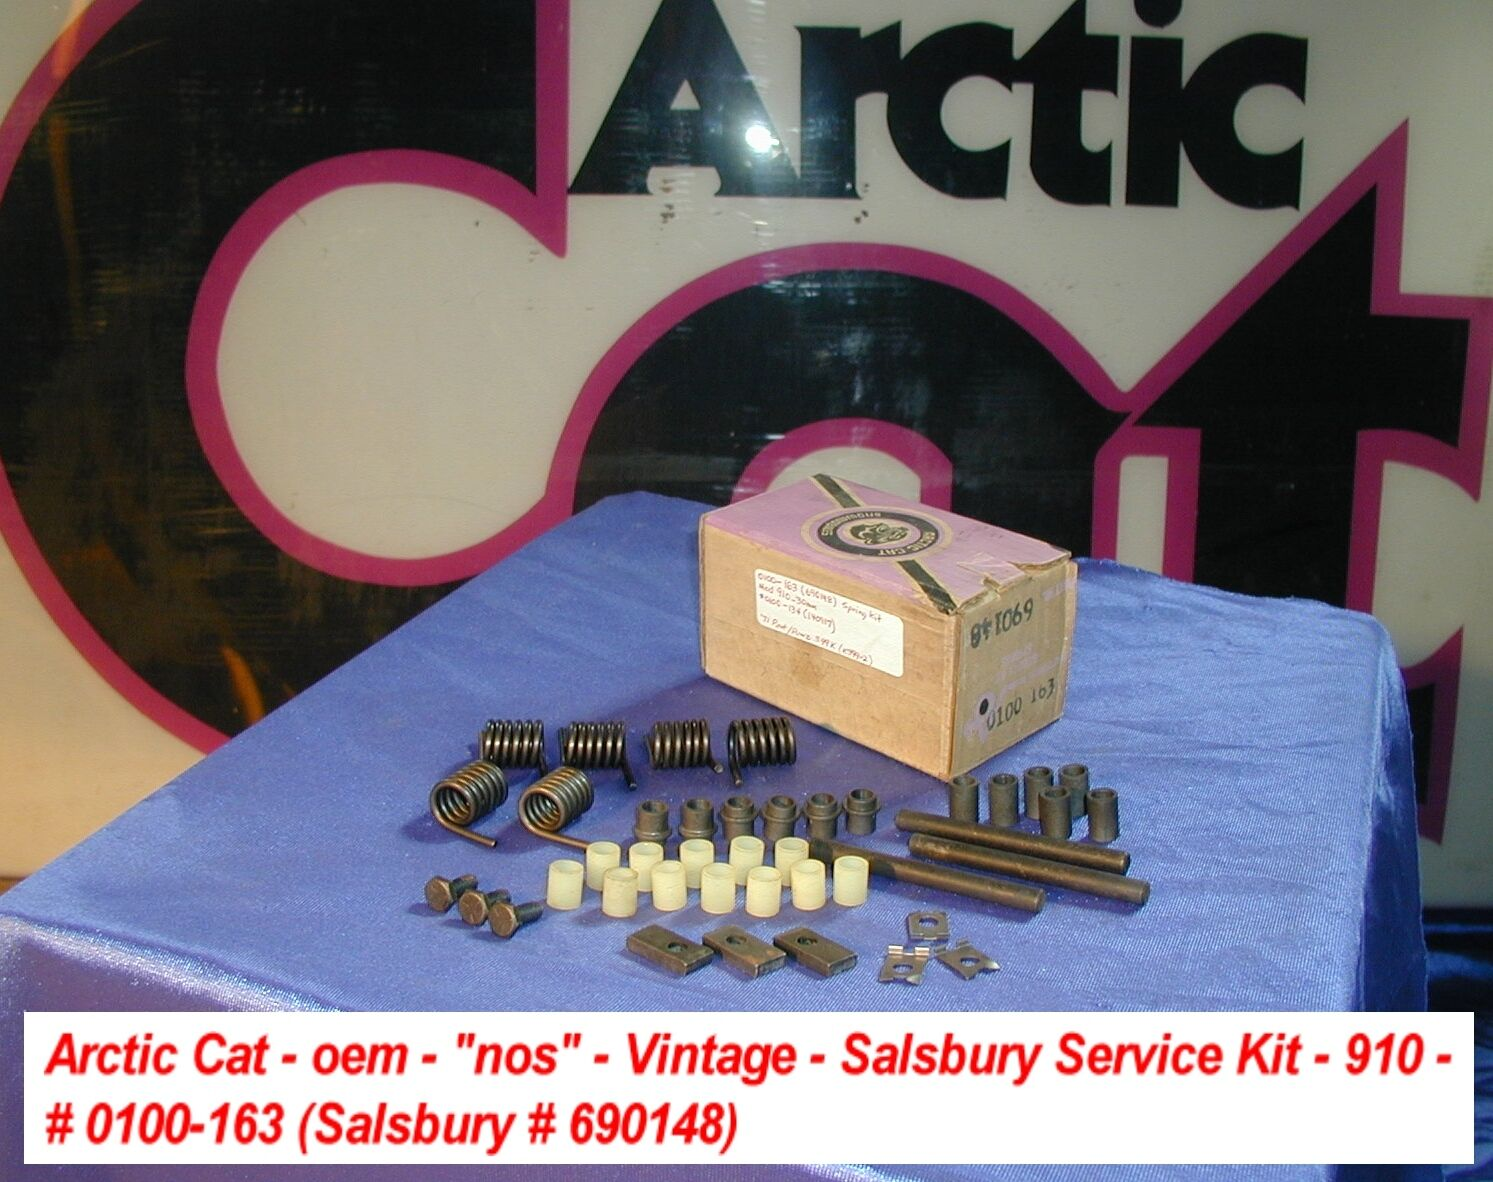 Arctic Cat Salsbury 910 Service Kit Springs  Pins Bushings 690148  free delivery